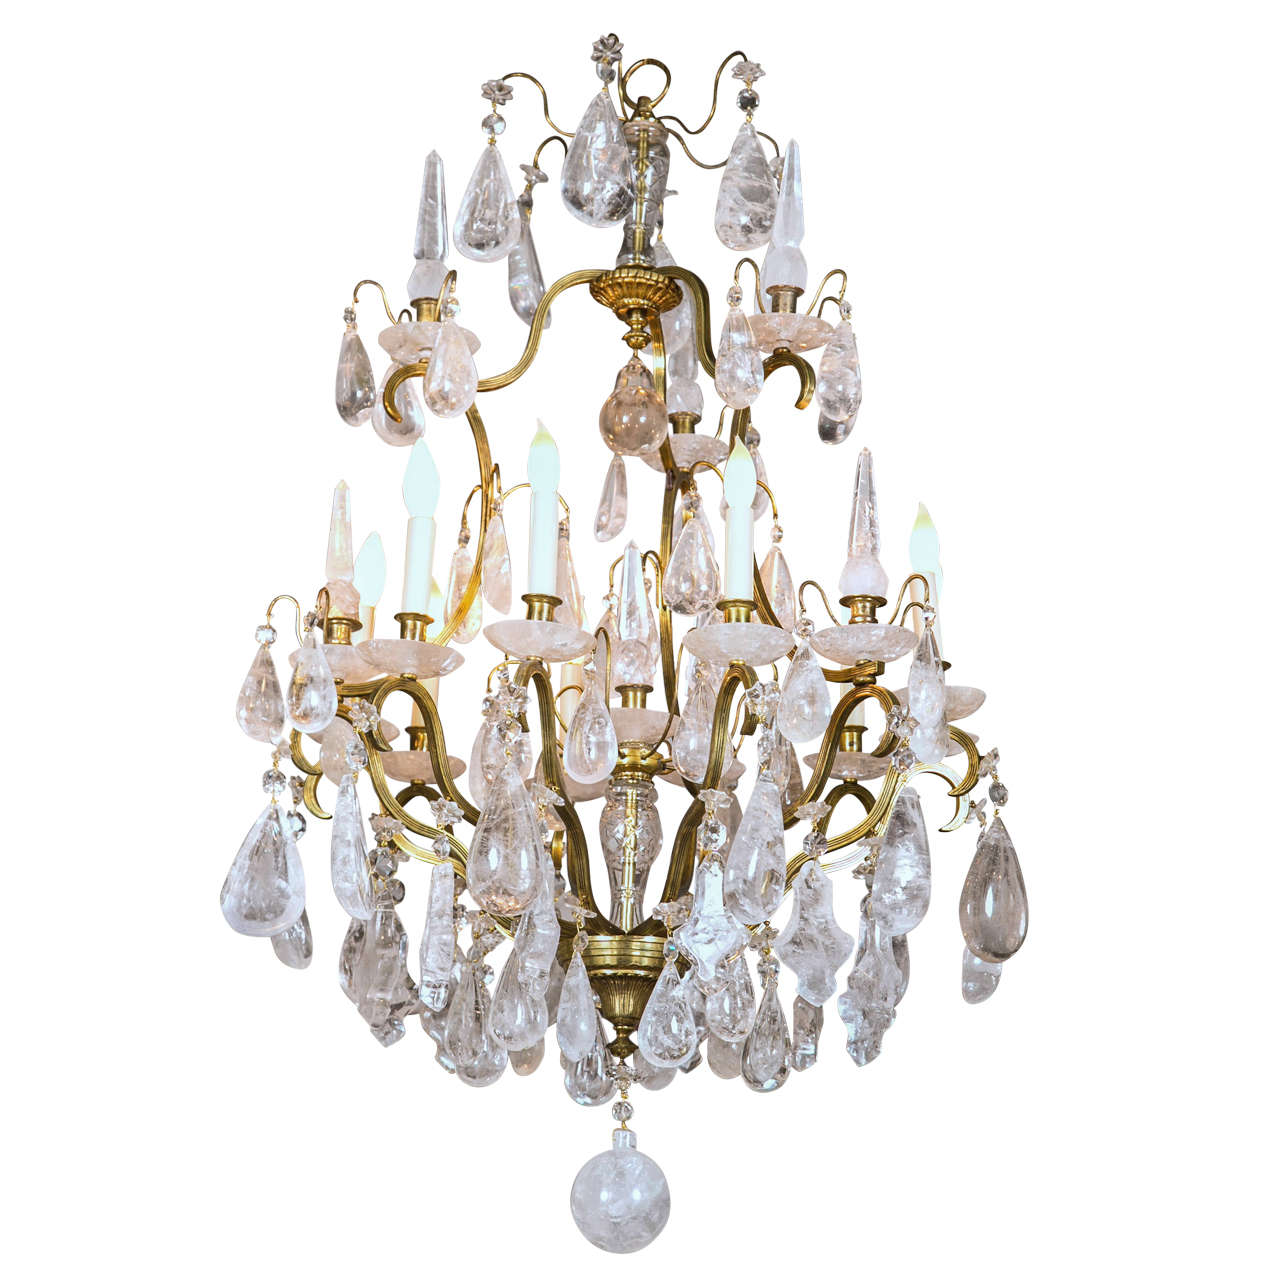 French Rock Crystal Chandelier At 1stdibs. Round Pedestal Coffee Table. Celect Siding. Art Gallery Lighting. Masters Touch. Apron Sinks. Mission Style Couch. Santa Cecilia Gold Granite. Mid Century Bench